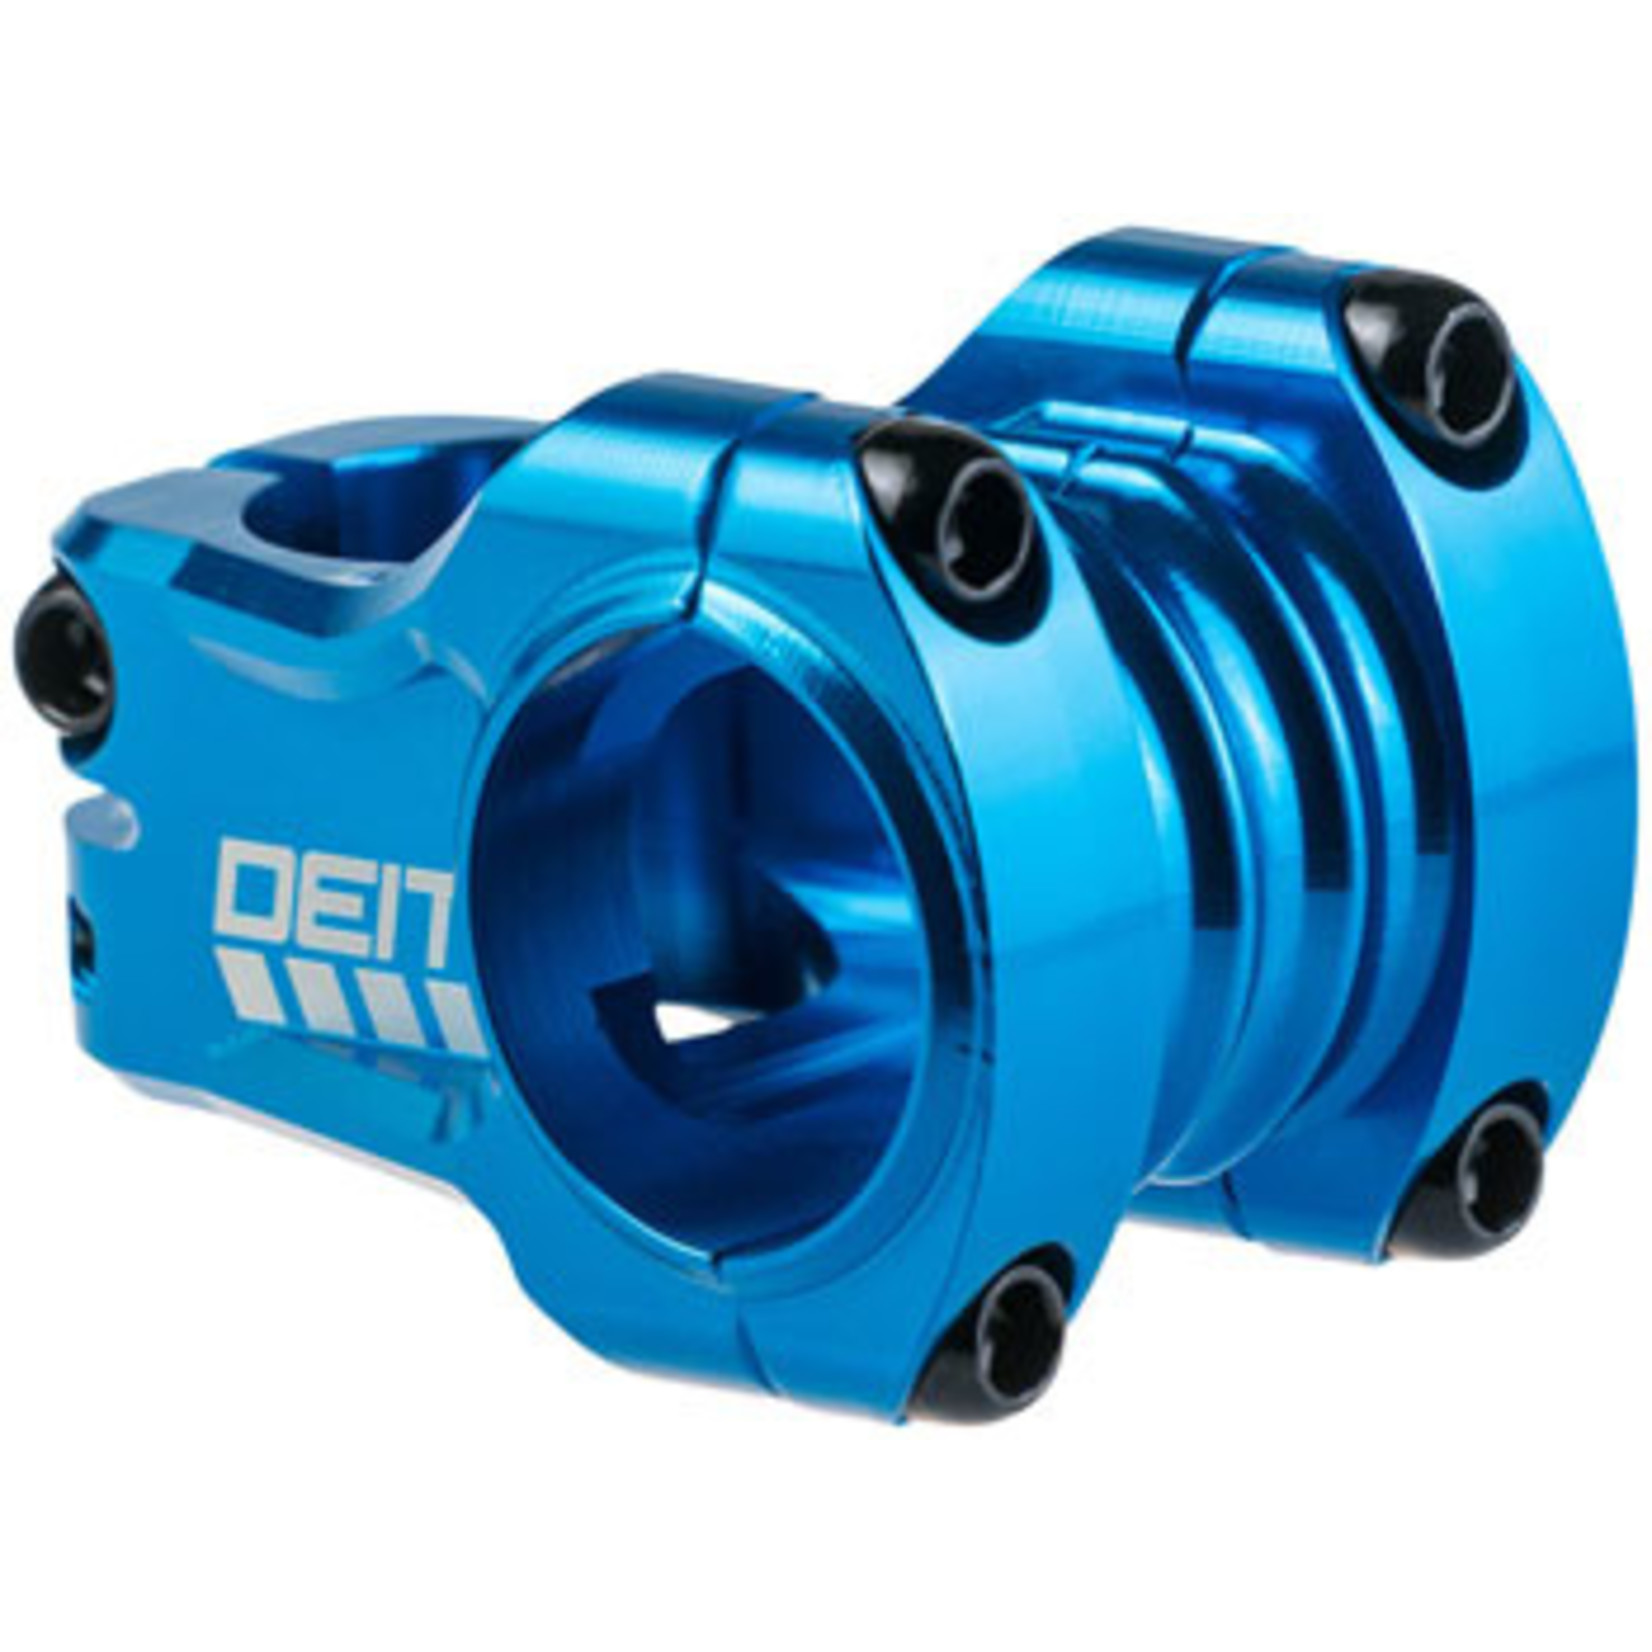 """Deity Components Deity Components Copperhead Stem - 35mm, 31.8 Clamp, +/-0, 1 1/8"""", Aluminum, Blue"""